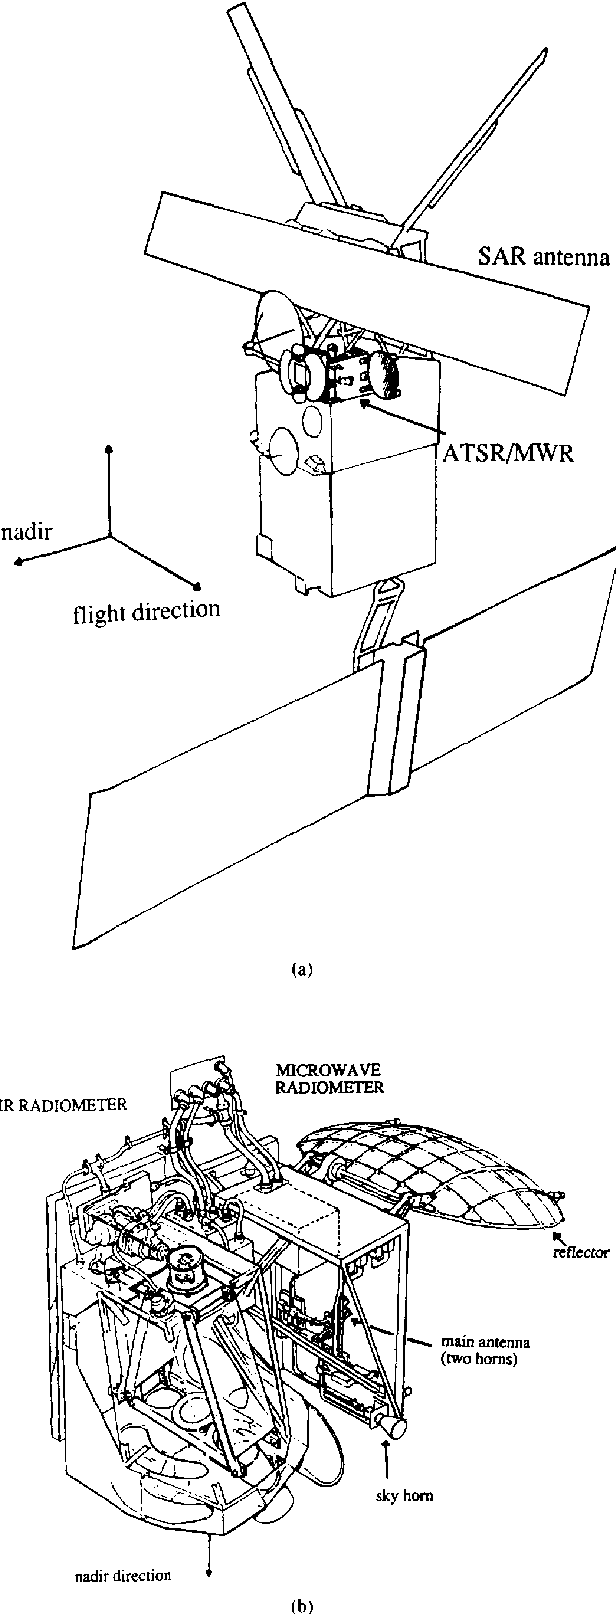 medium resolution of  a schematic view of the radiometer implementation on the satellite